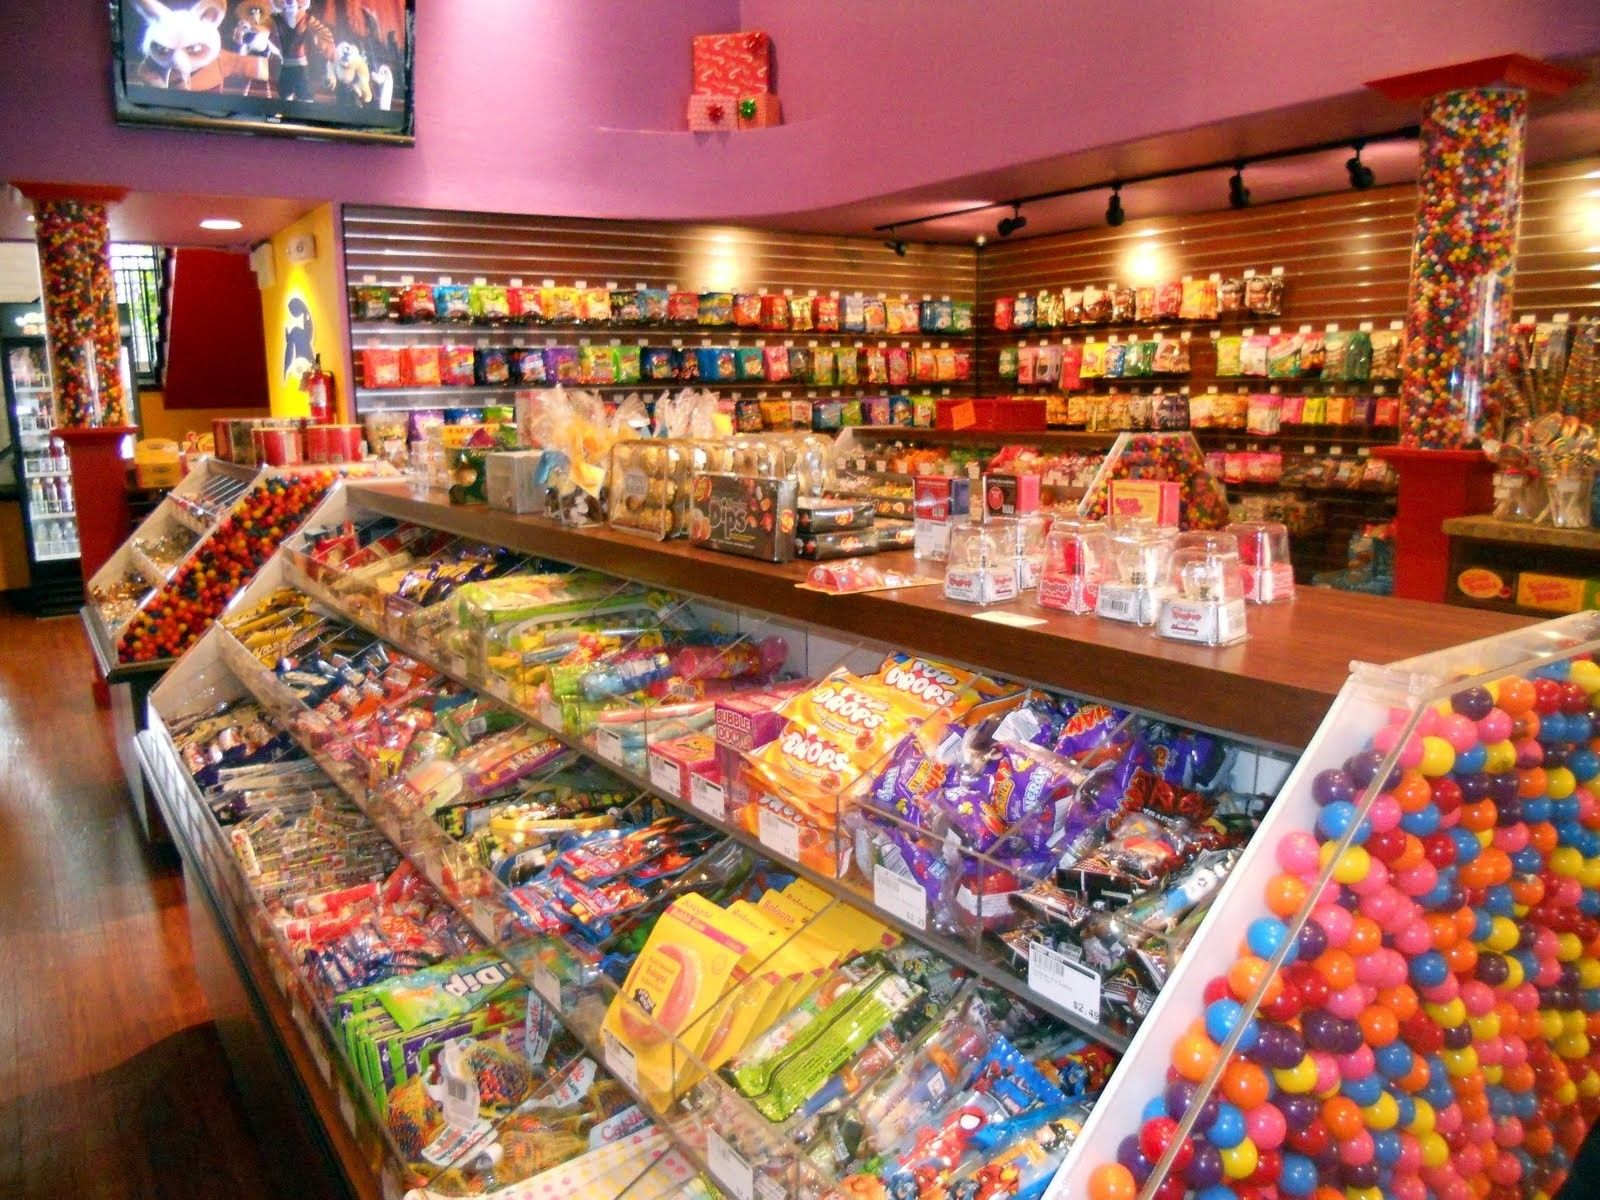 Pin by Justin Andrews on Candy Heaven! | Pinterest | Candy store